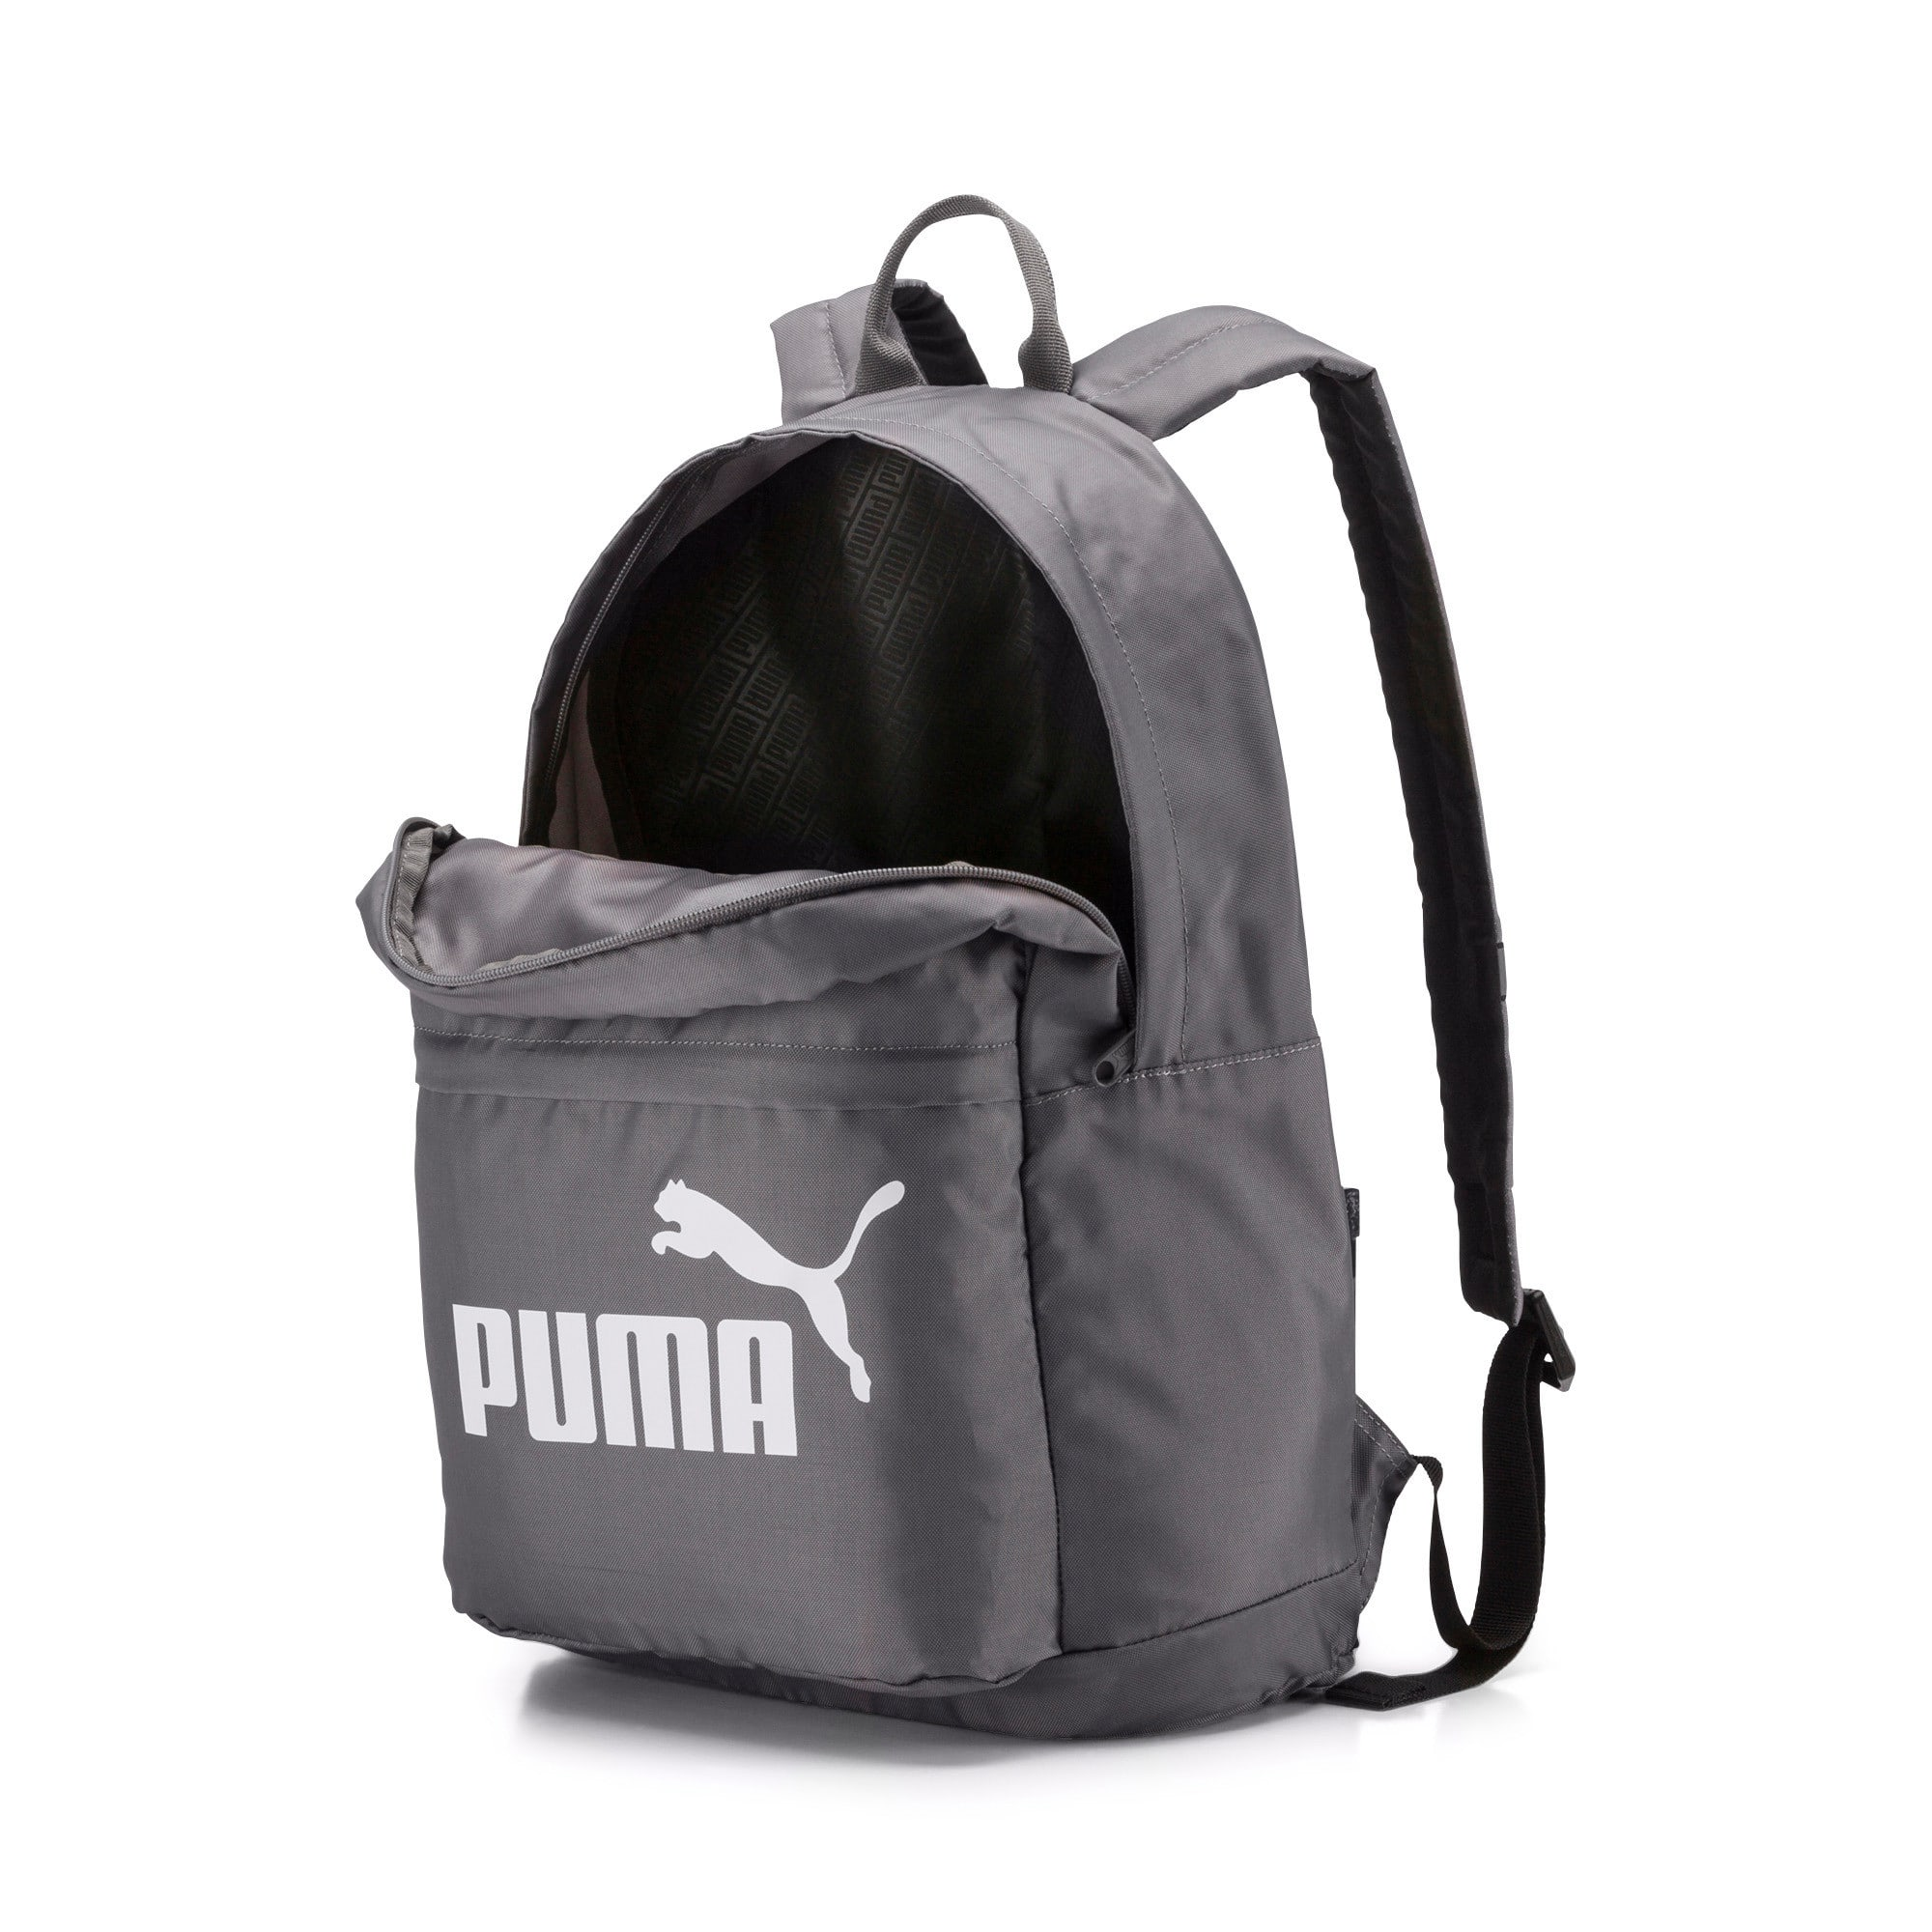 Thumbnail 4 of Classic Backpack, Charcoal Gray, medium